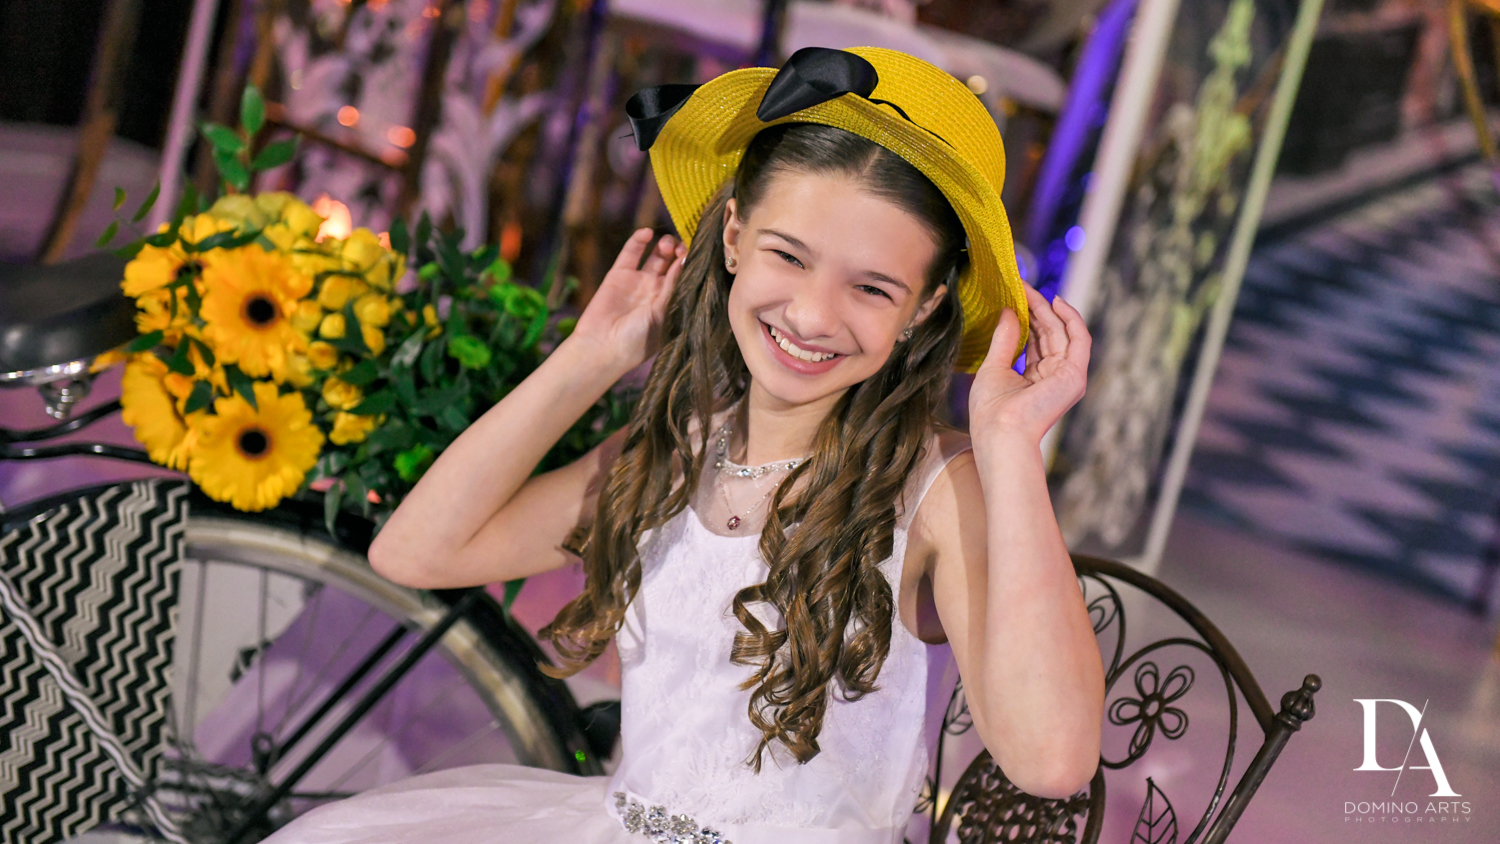 yellow hat prop at Madeline in Paris theme Bat Mitzvah at Boca Raton Resort and Club by Domino Arts Photography